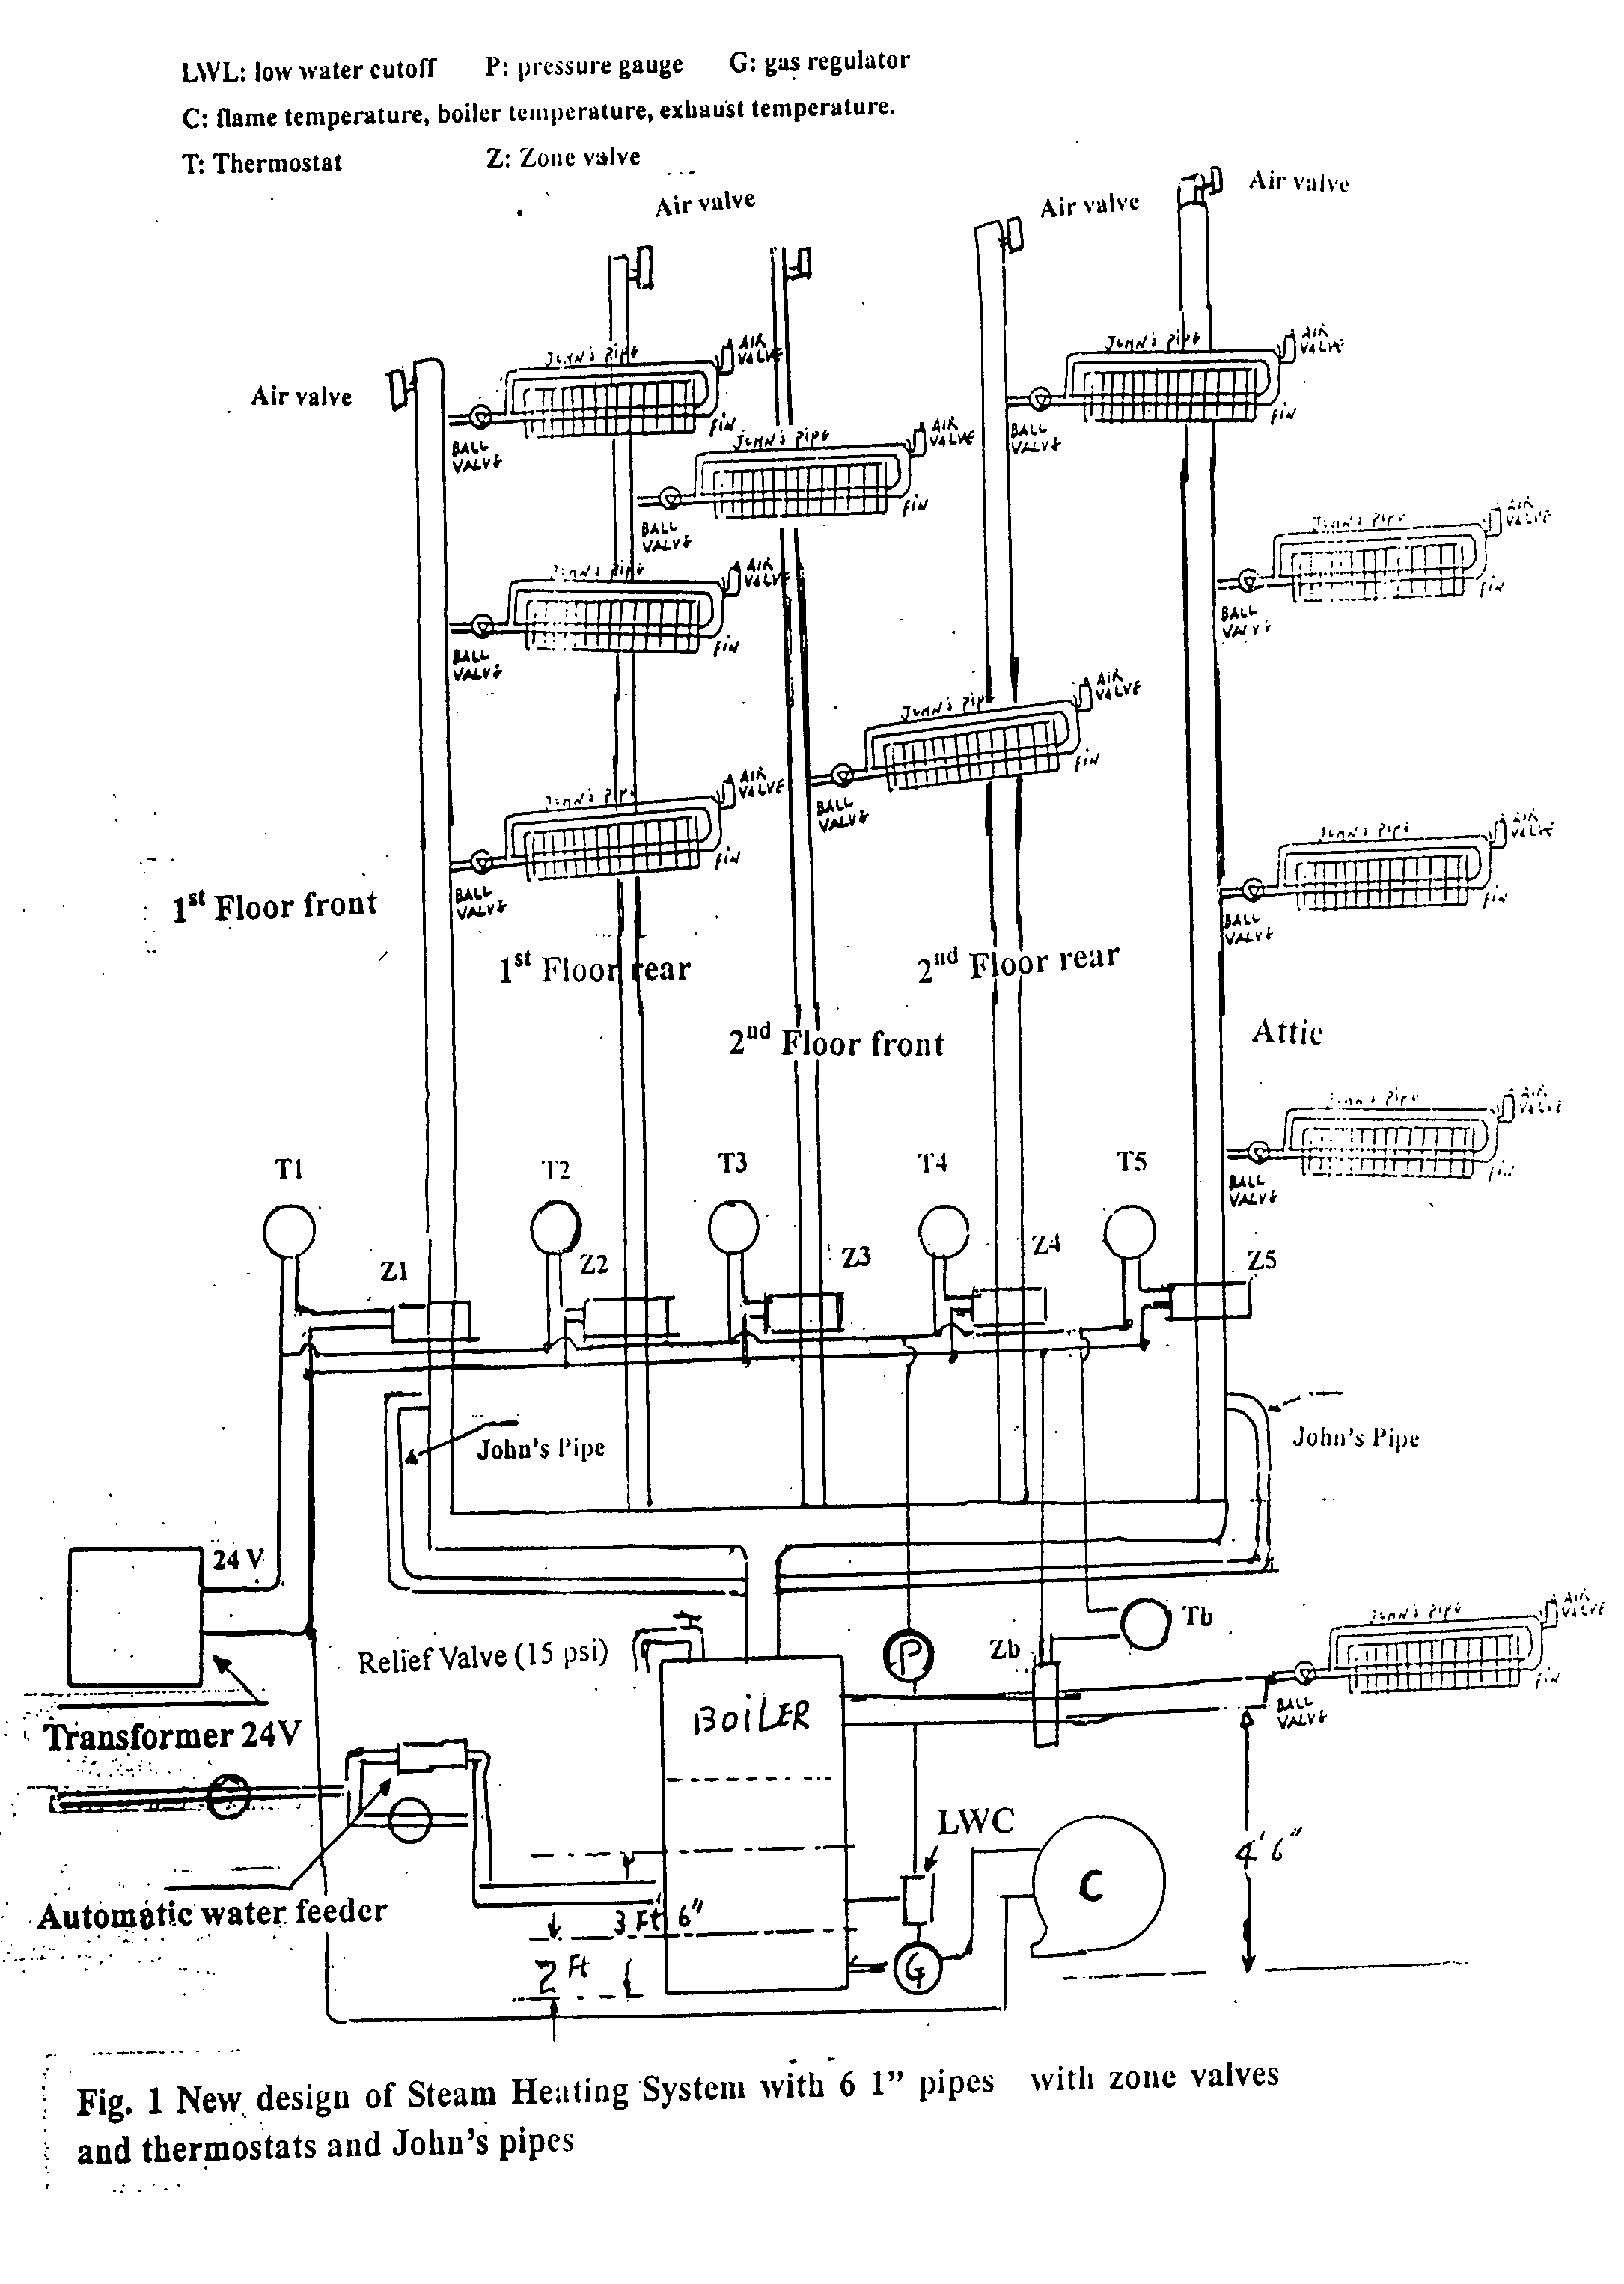 318277898640174309 besides 3 Wire Zone Valve Wiring Diagram Heat Only Thermostat With Honeywell additionally Boiler Piping Layout furthermore Types Heating Systems furthermore US20080223947. on baseboard heating systems zone control